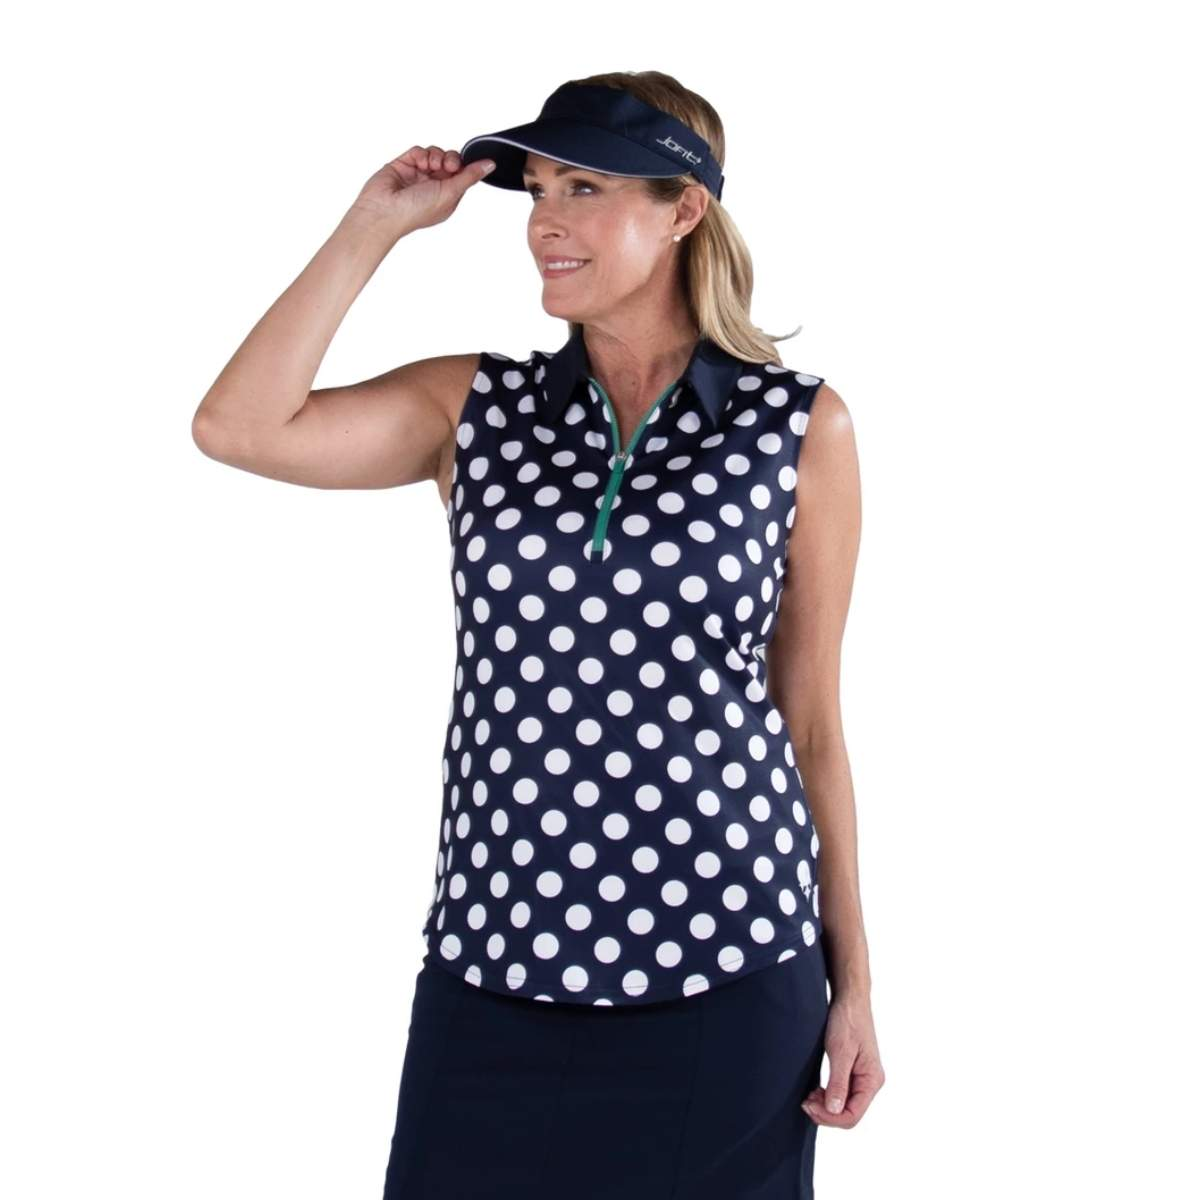 Jofit Women's Printed Sleeveless Polka Dot Polo